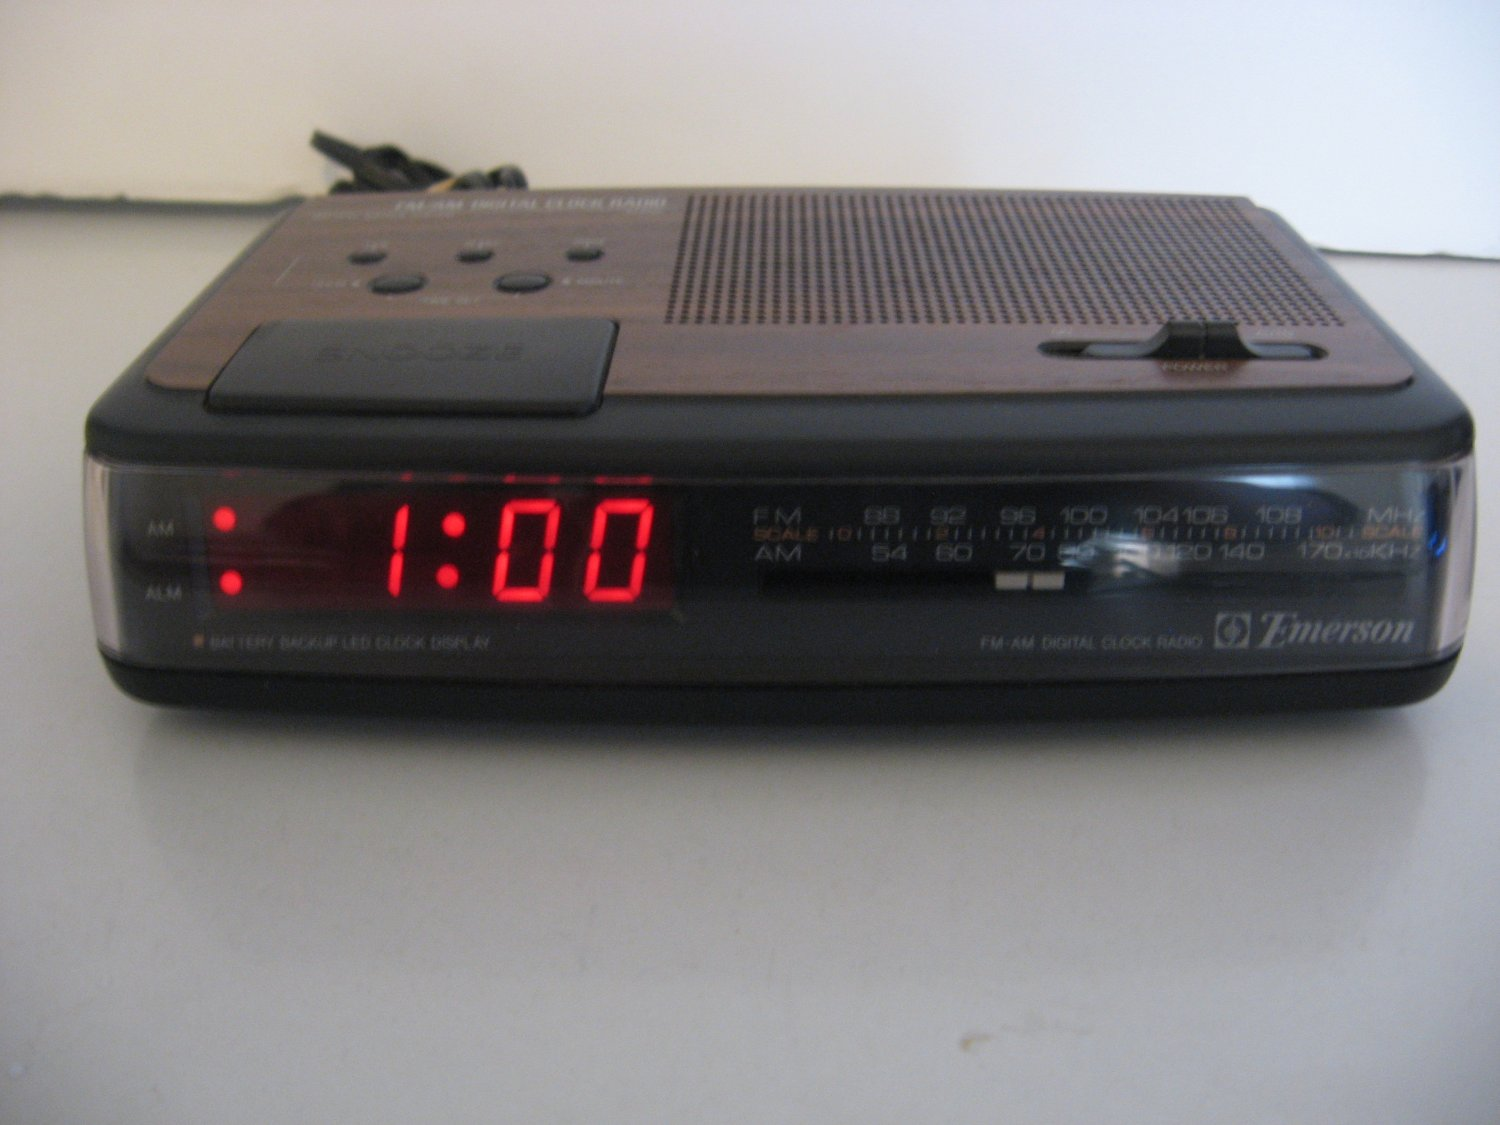 Vintage Emerson AM/FM digital alarm Clock Radio - Woodgrain Finish